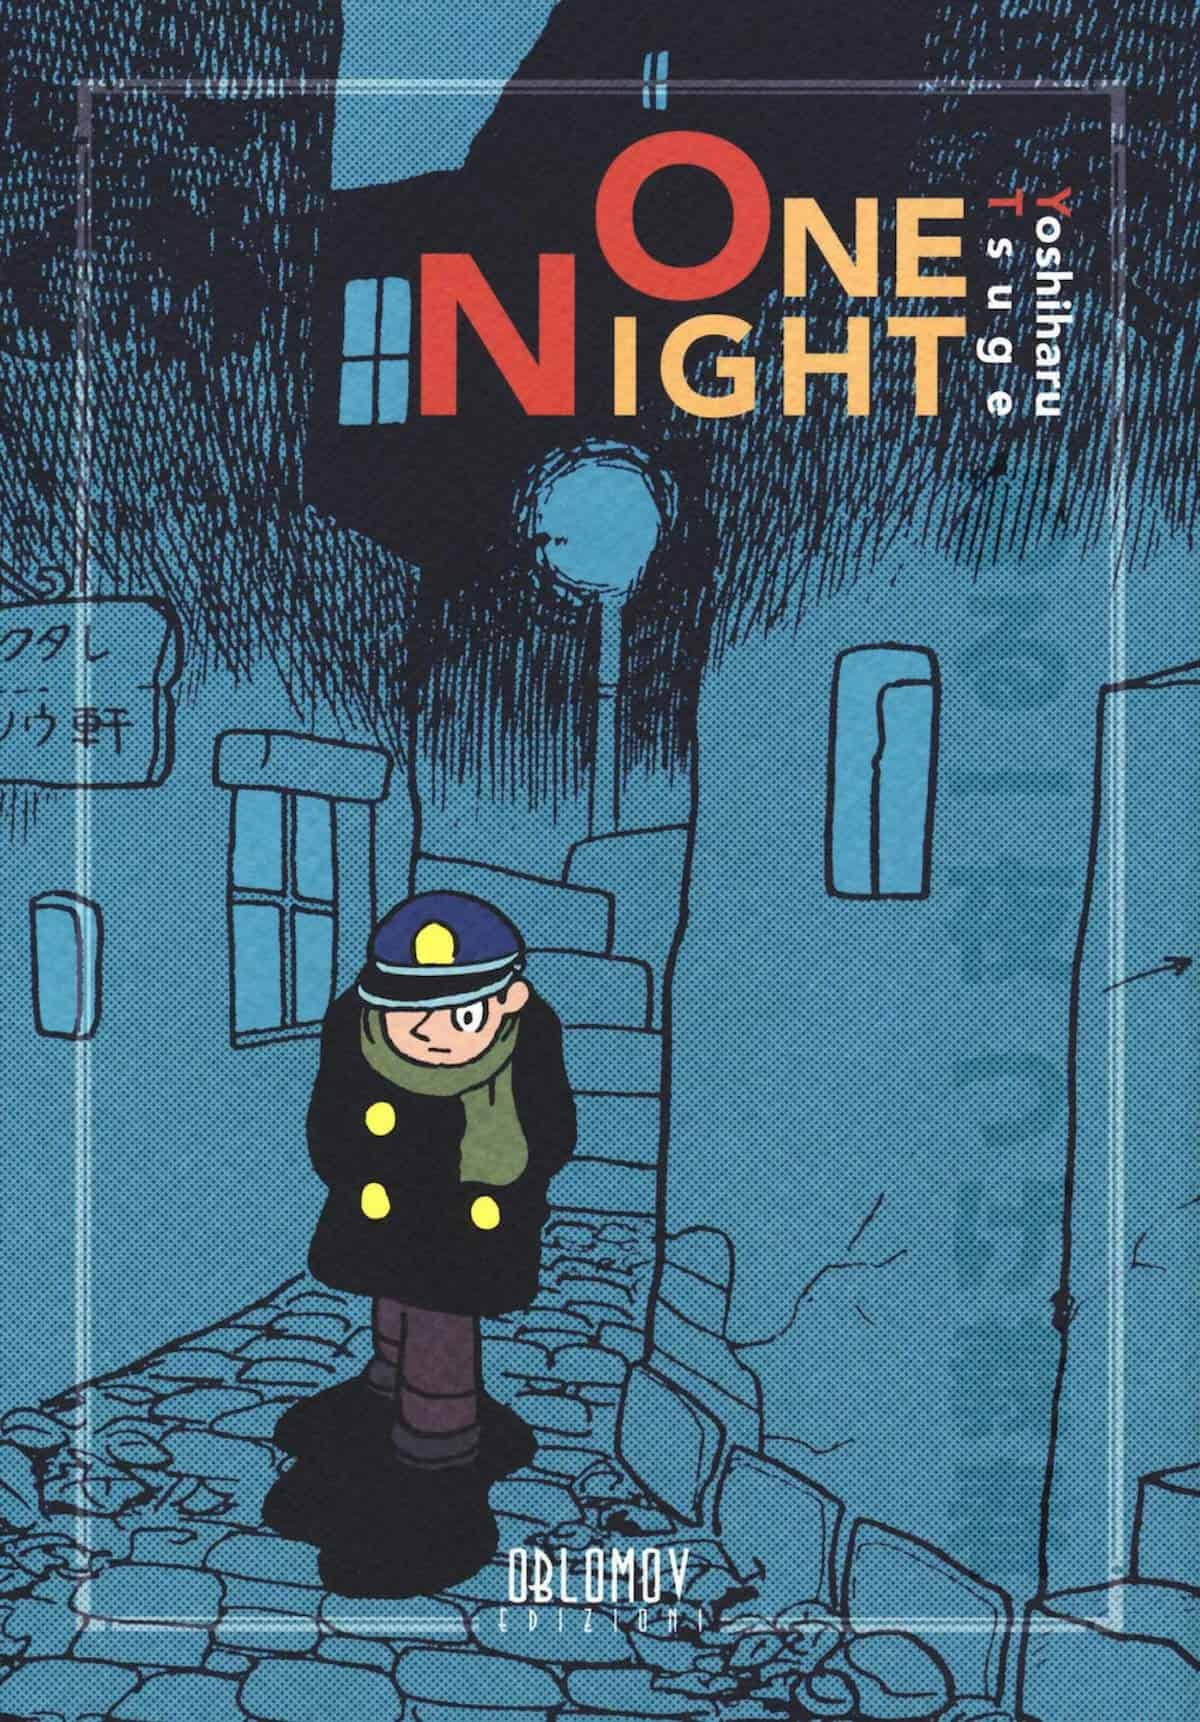 fumetti 31 01 2020 one night tsuge oblomov